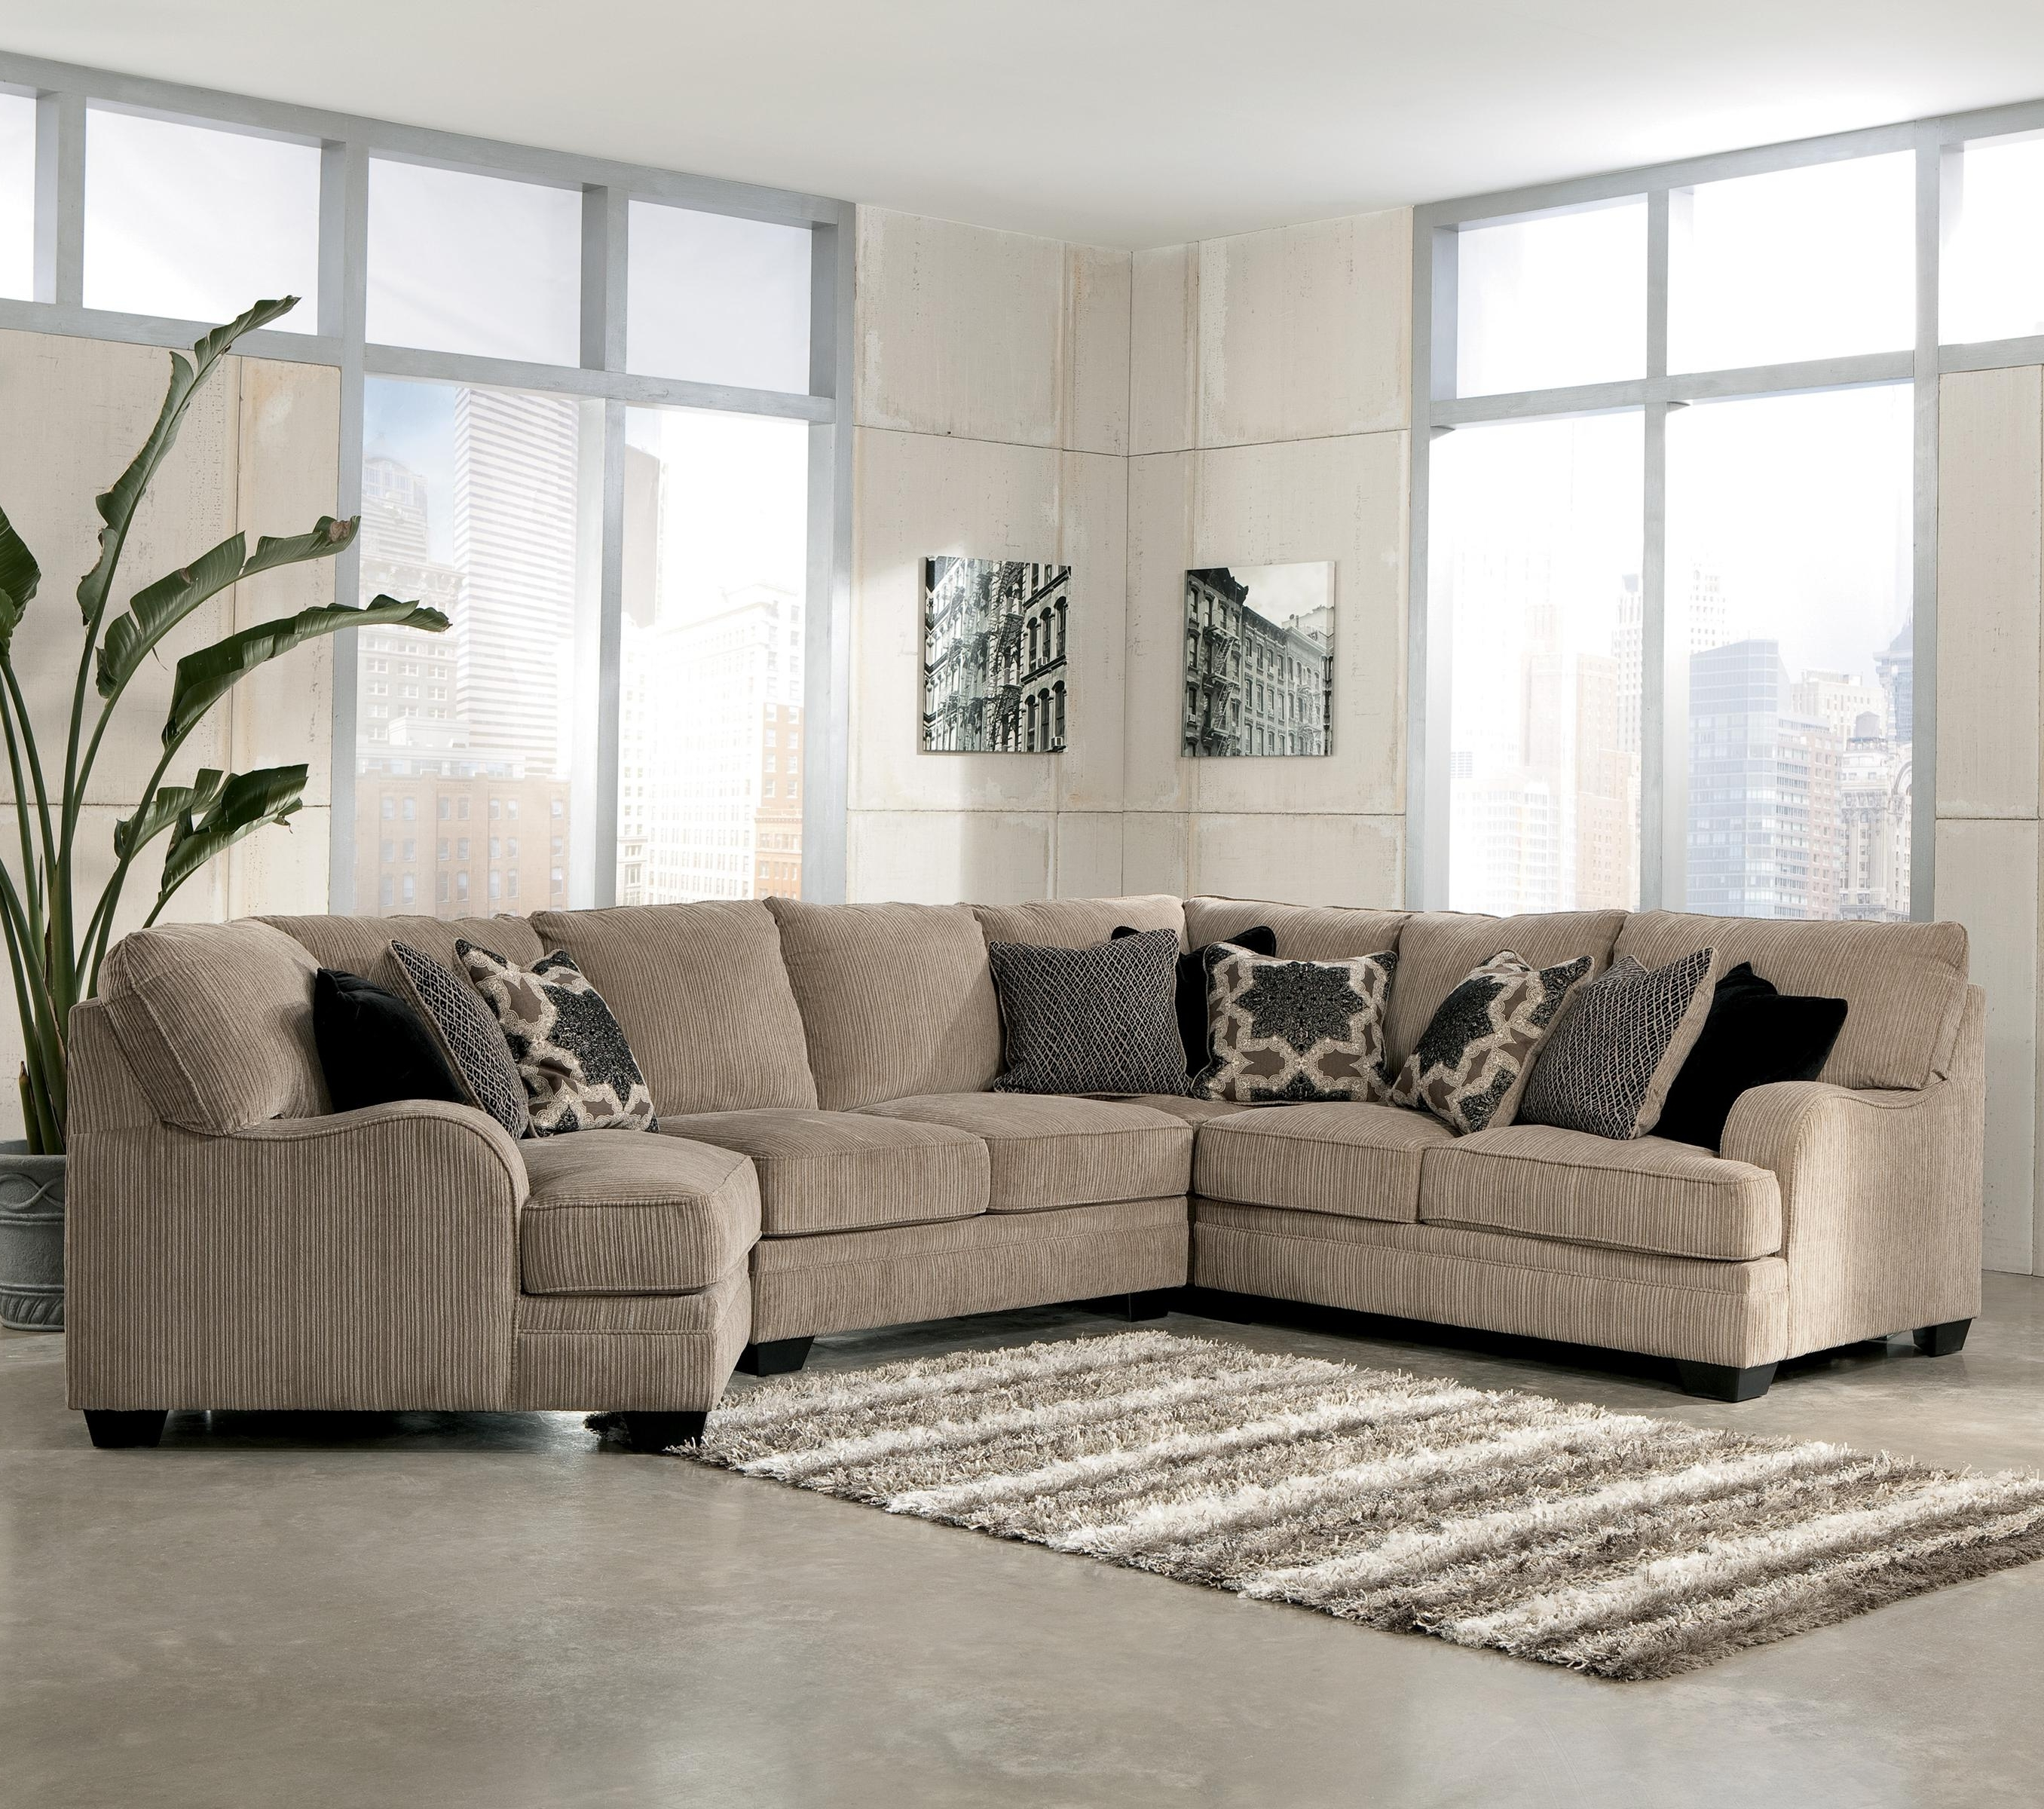 Signature Designashley Katisha – Platinum 4 Piece Sectional With Widely Used Cuddler Sectional Sofas (View 15 of 20)